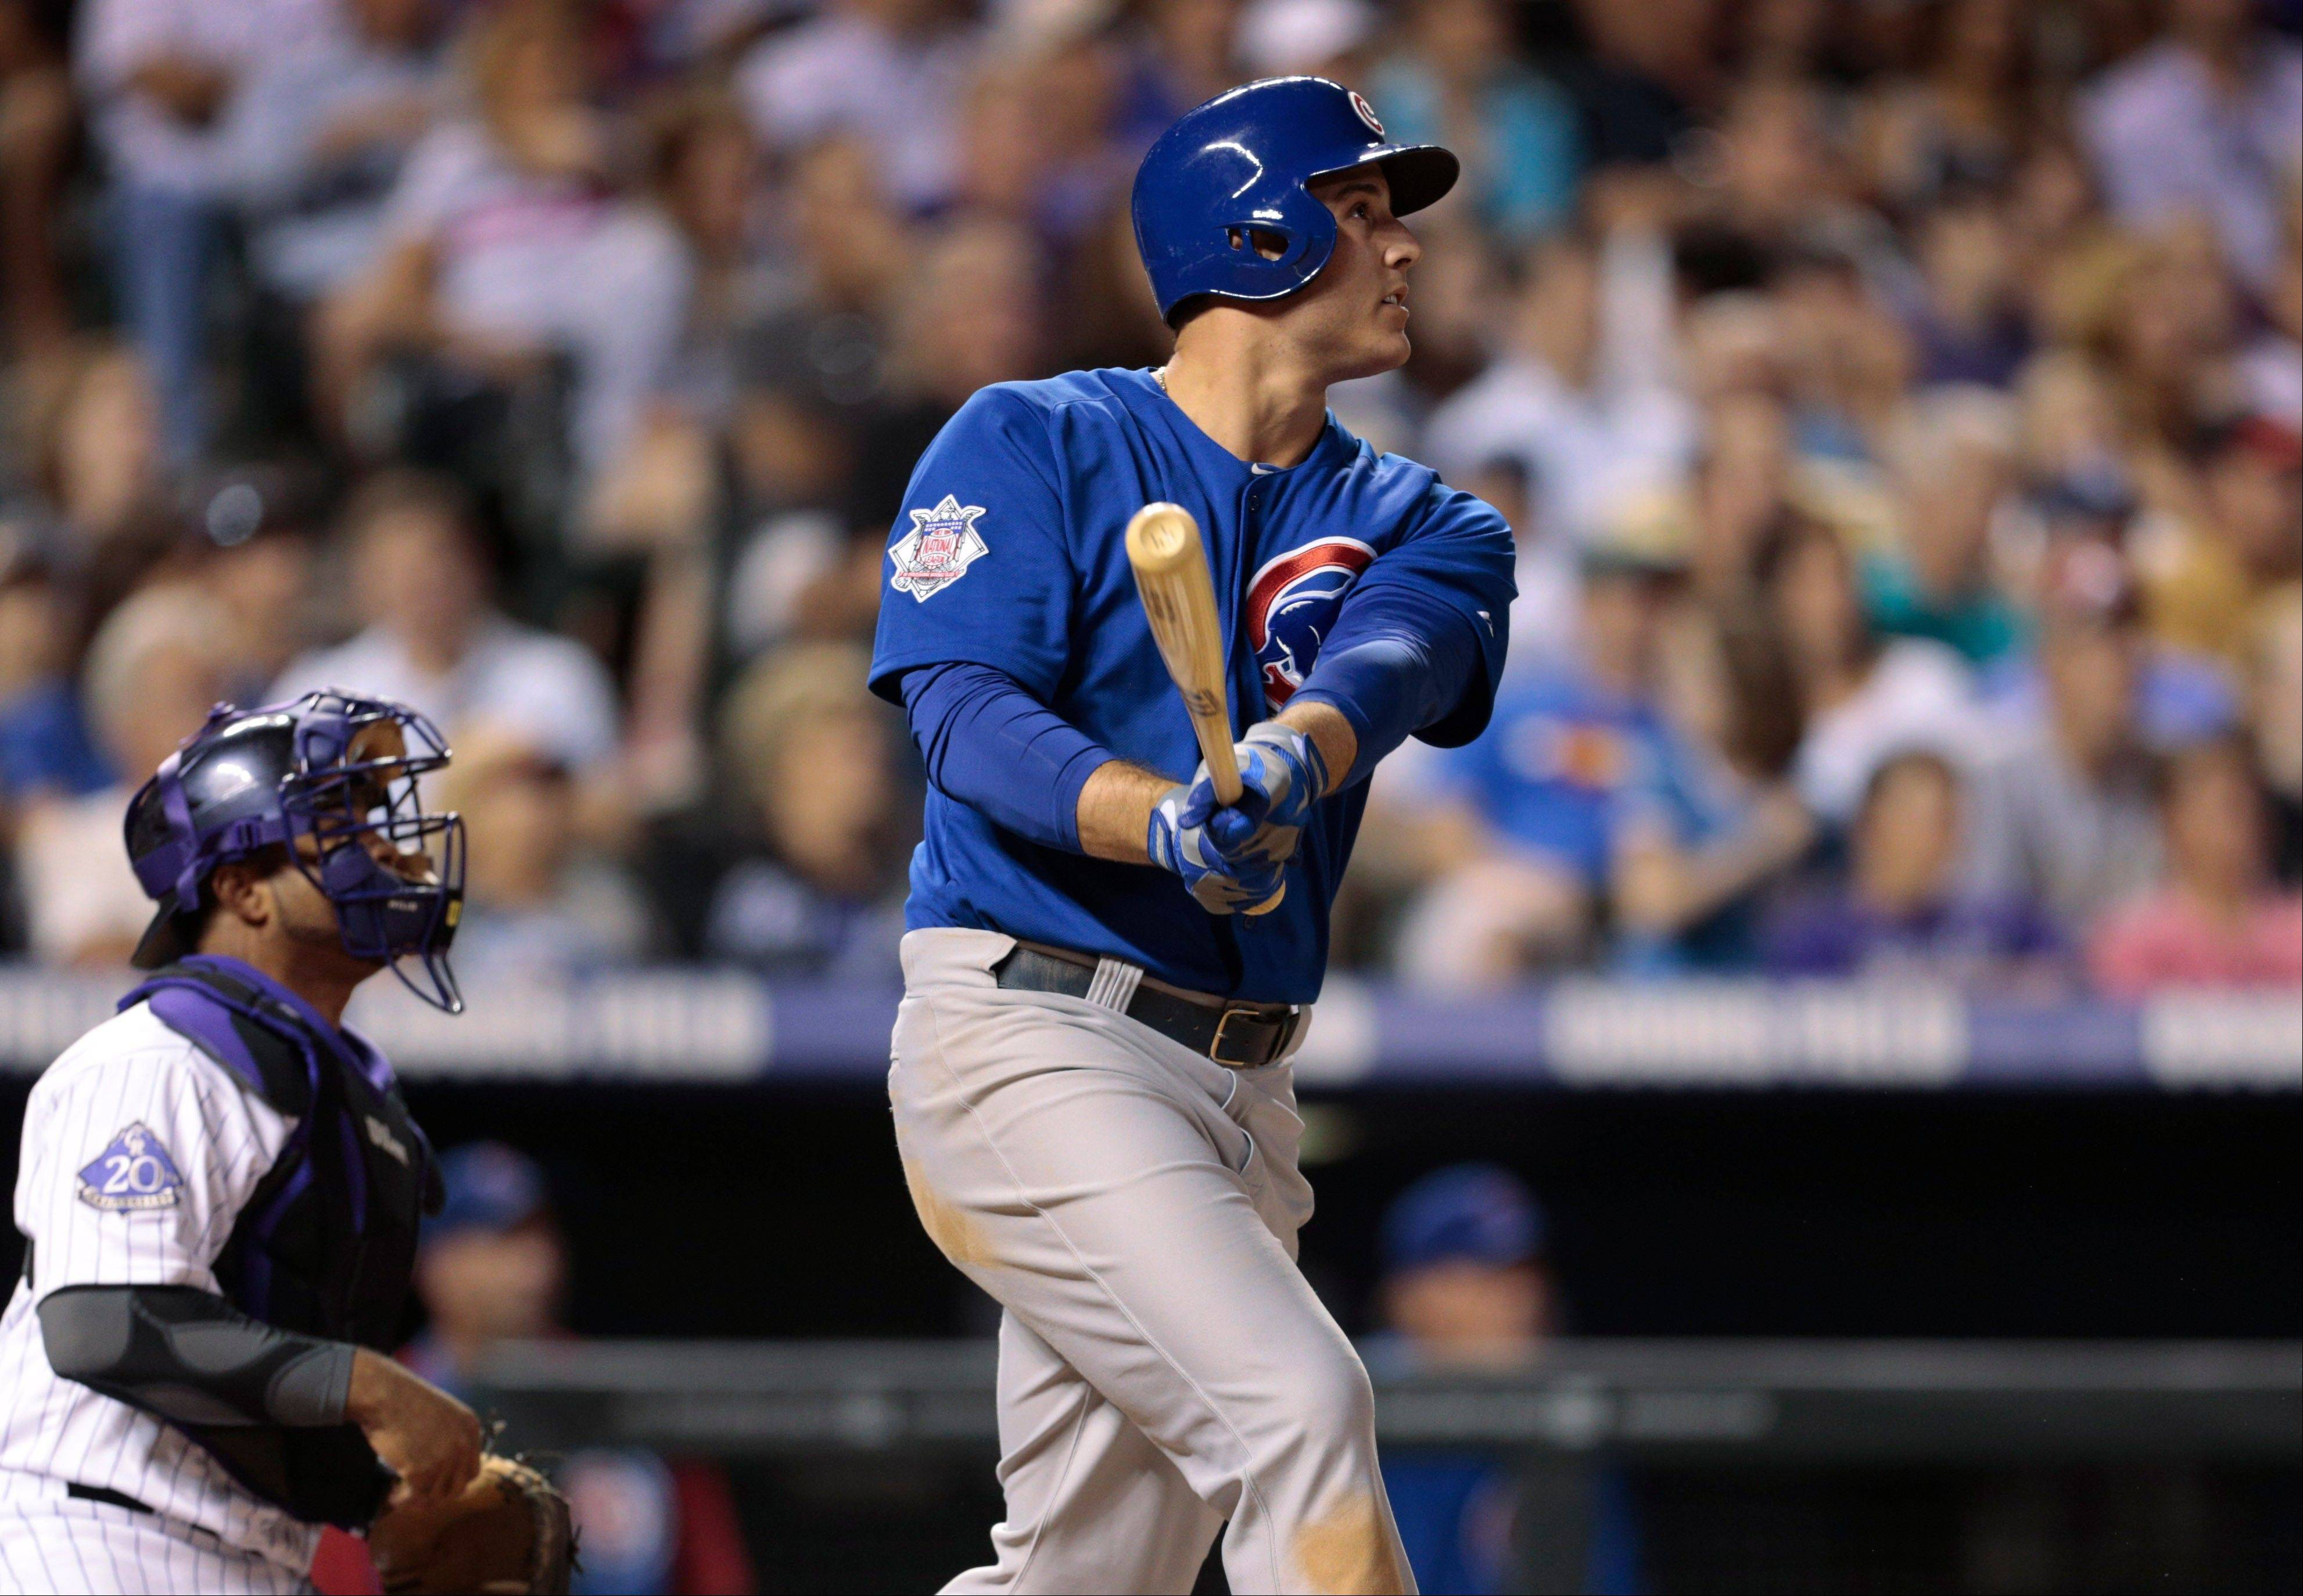 Chicago Cubs slugger Anthony Rizzo, right, and Rockies catcher Wilin Rosario watch Rizzo's fly ball in the ninth inning of the Cubs' 3-1 victory in a baseball game in Denver.